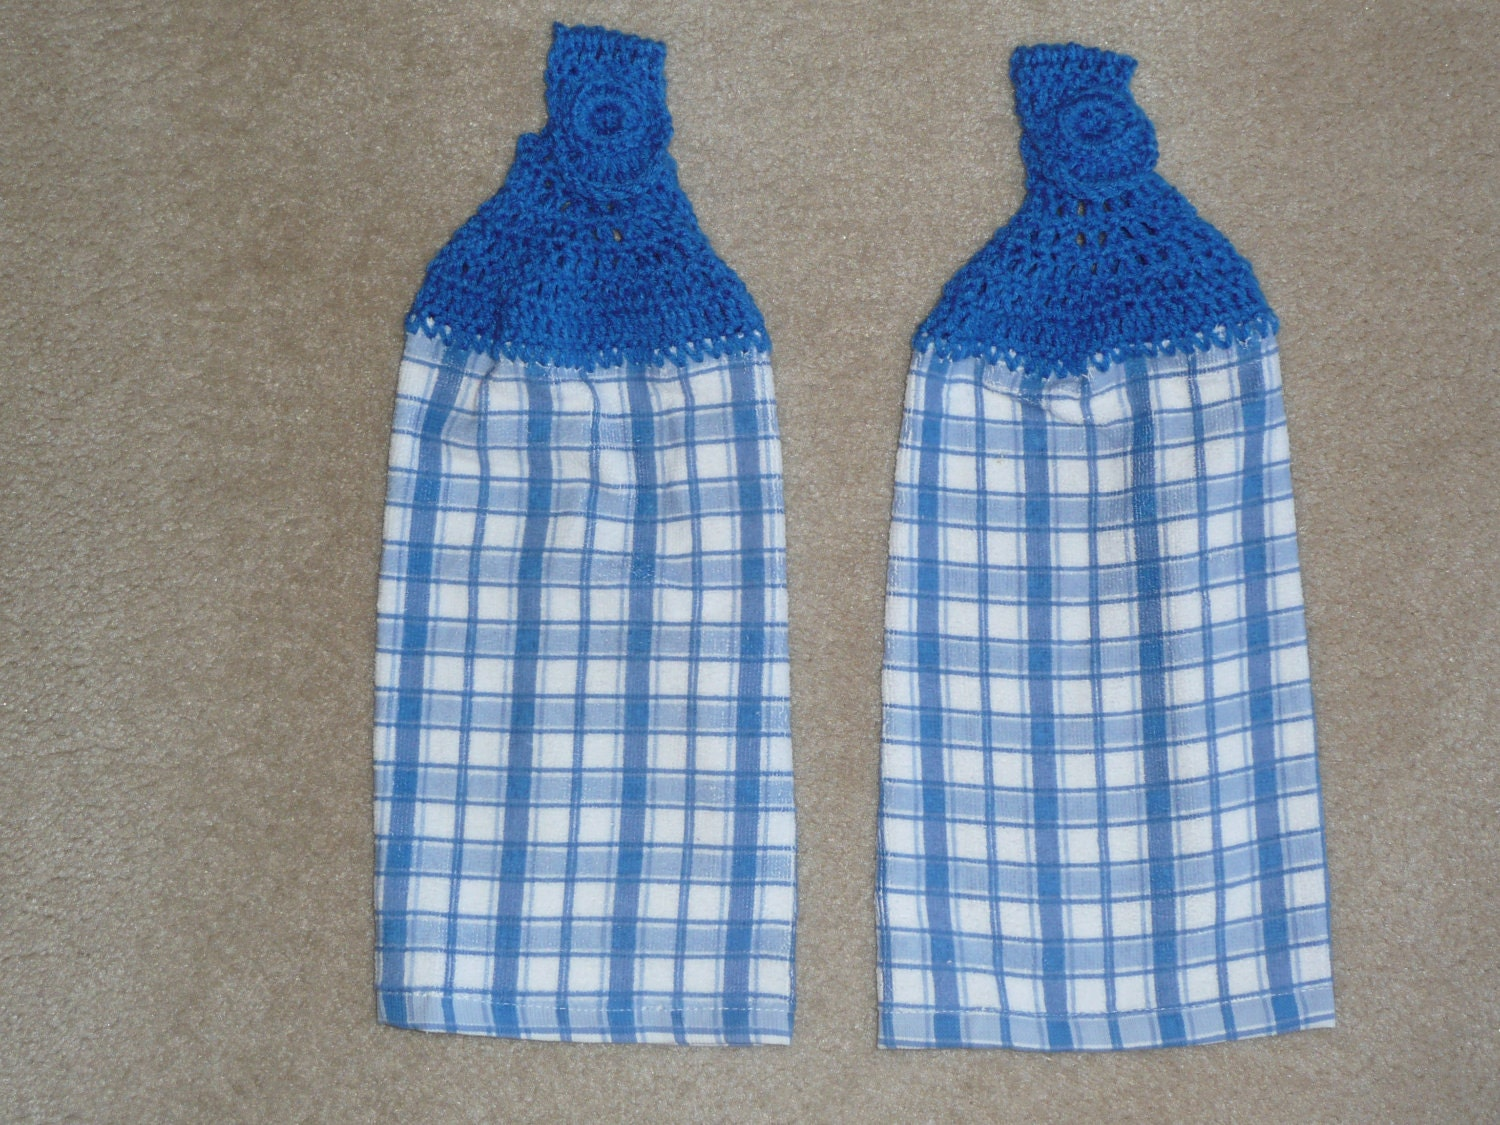 Crochet Patterns Kitchen Towels : Crocheted Topped Hanging Kitchen Towels-Blue Plaid towels with